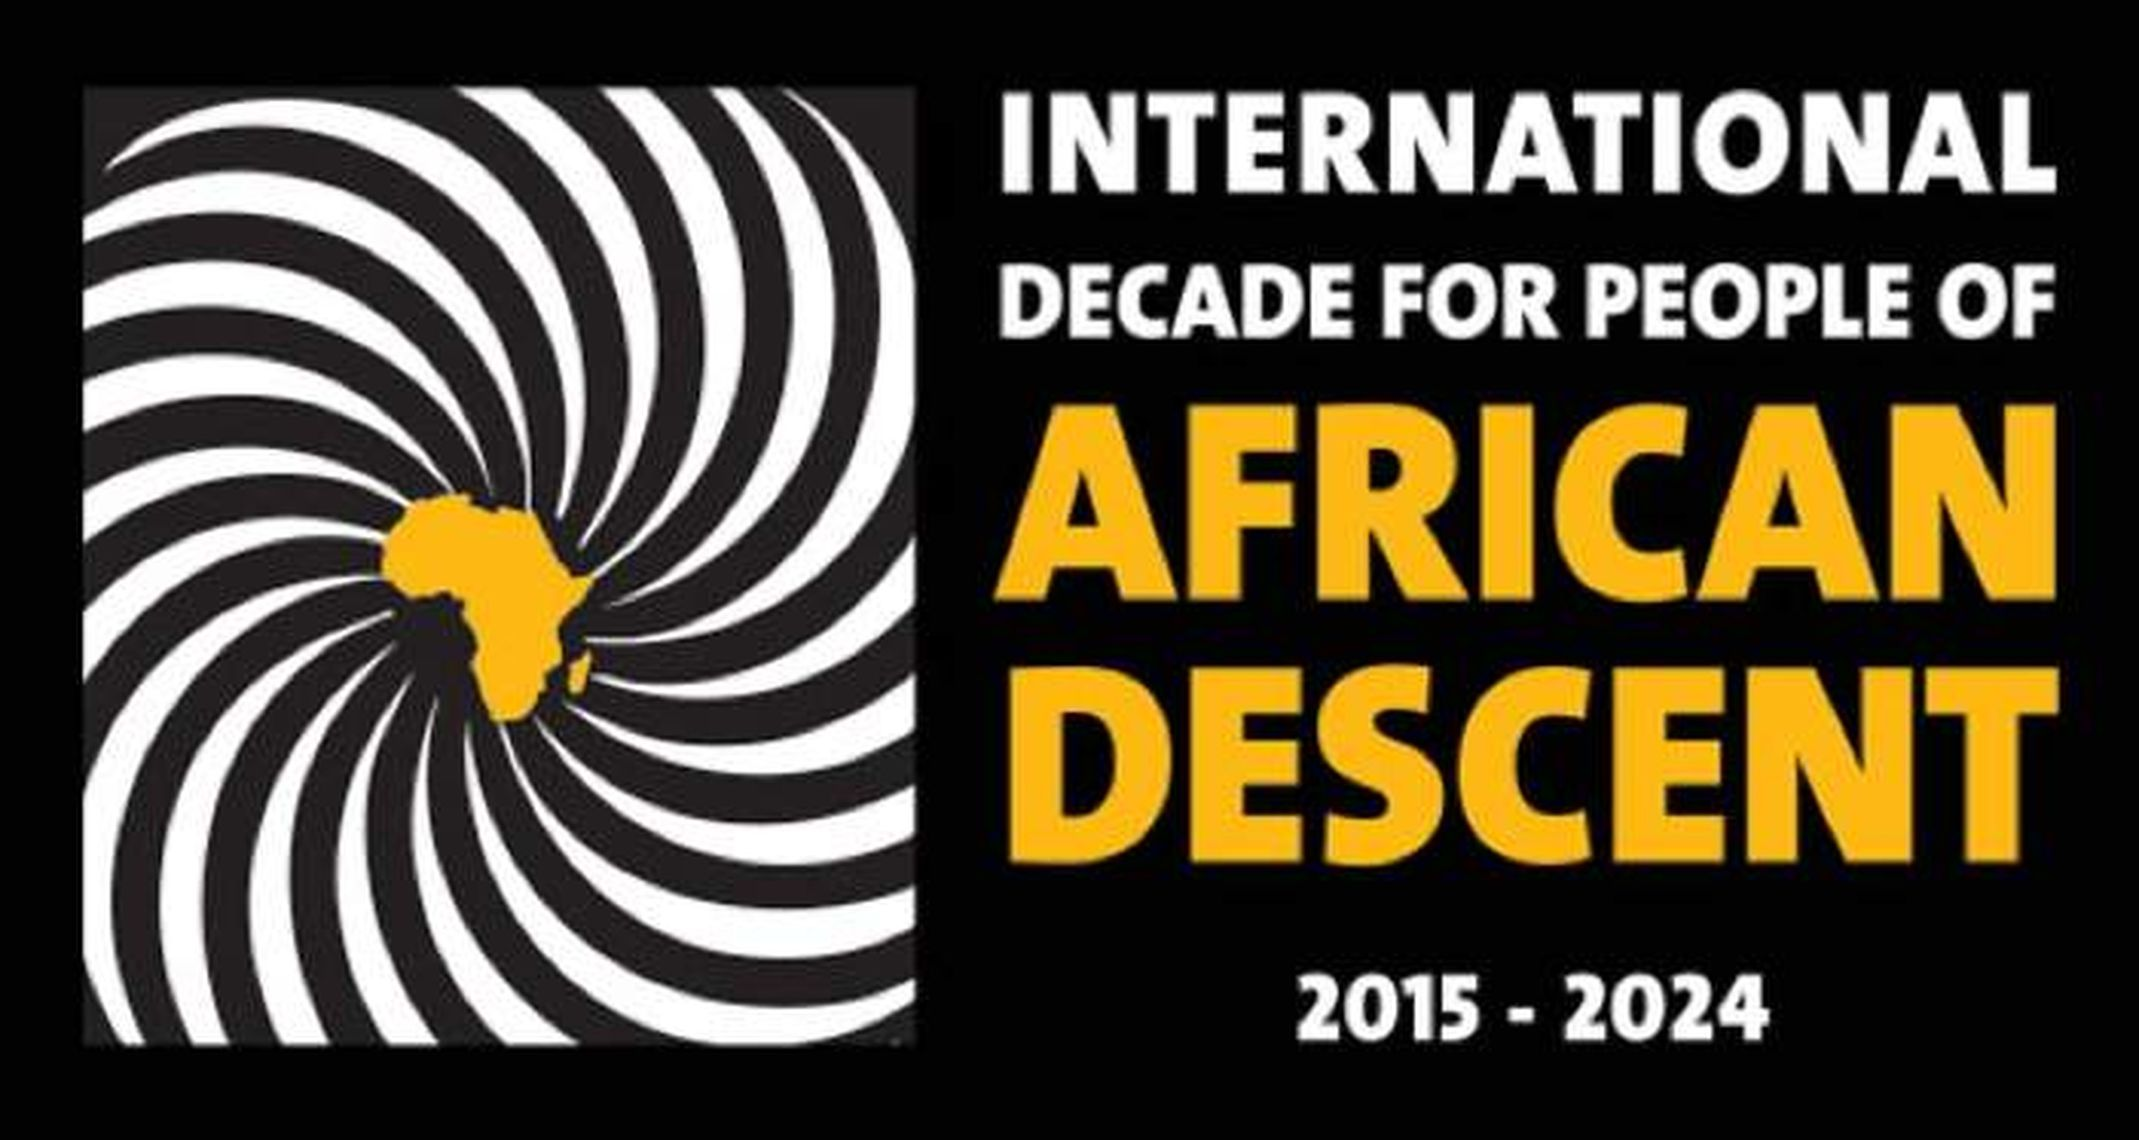 intl-decade-of-people-of-african-descent